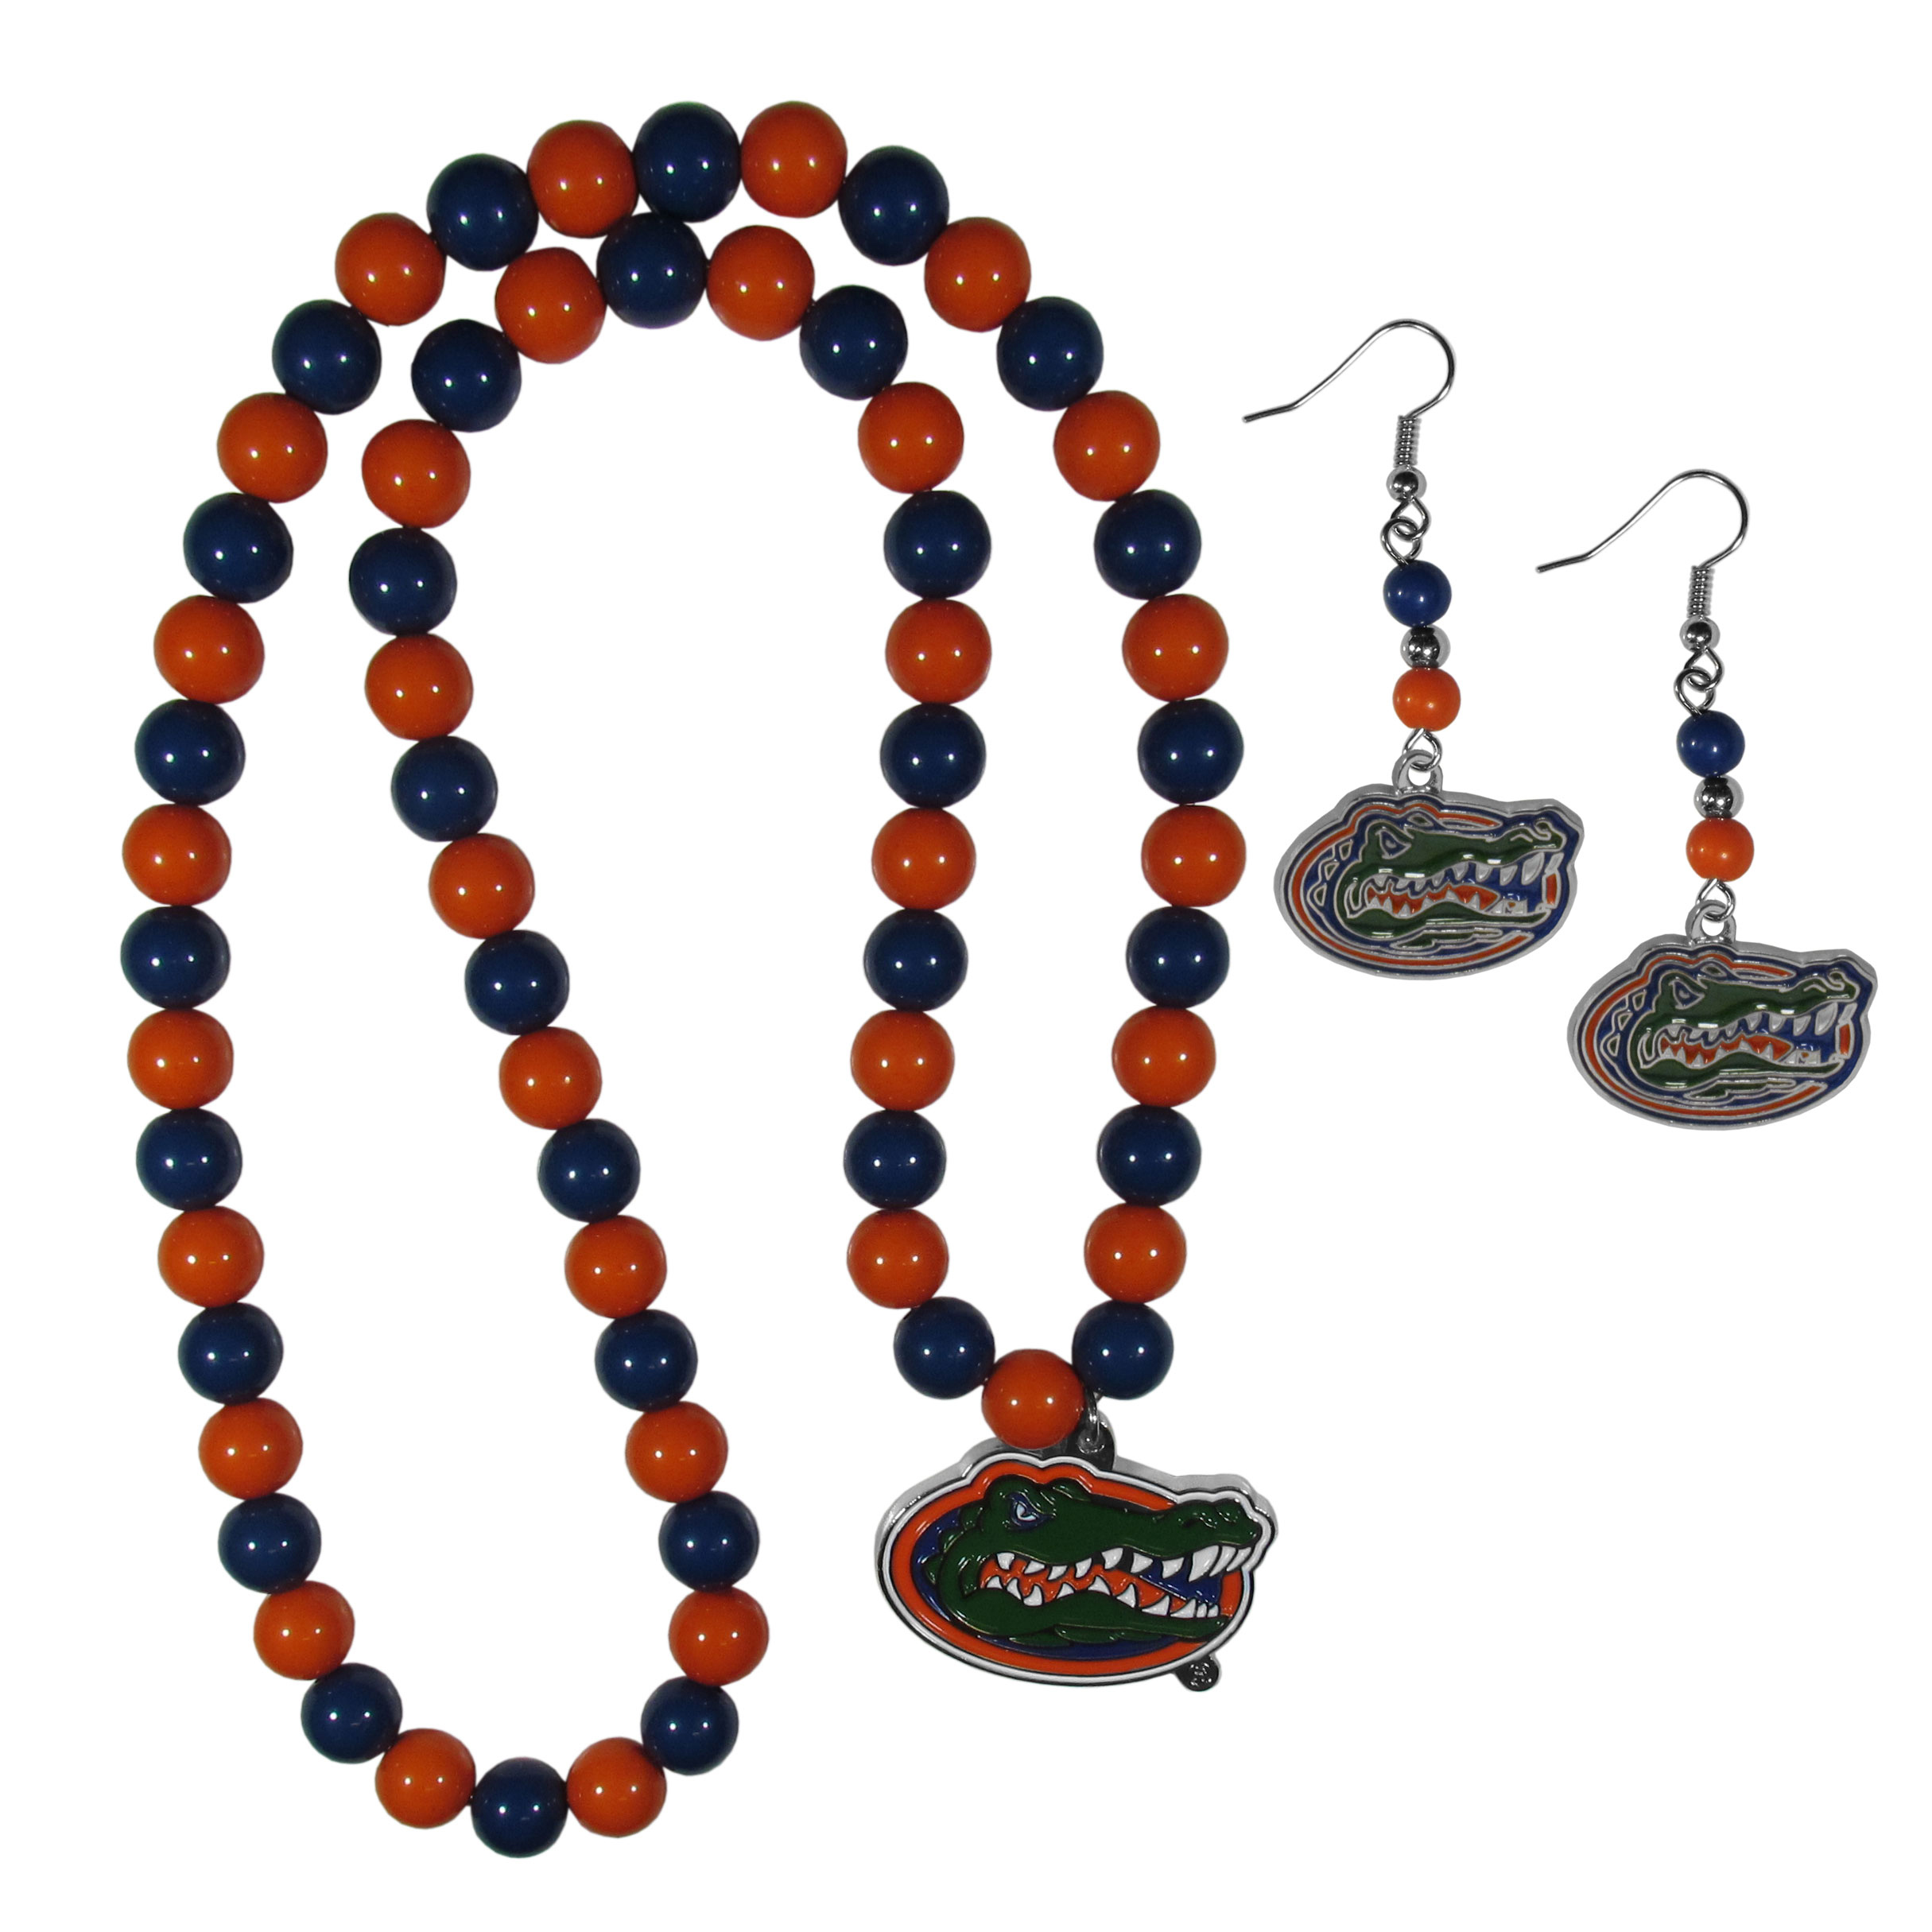 Florida Gators Fan Bead Earrings and Necklace Set - These fun and colorful Florida Gators fan bead jewelry pieces are an eyecatching way to show off your team spirit. The earrings feature hypoallergenic, nickel free fishhook post and 2 team colored beads with a beautifully carved team charm to finish this attractive dangle look. The mathcing bracelet has alternating team colored beads on a stretch cord and features a matching team charm.